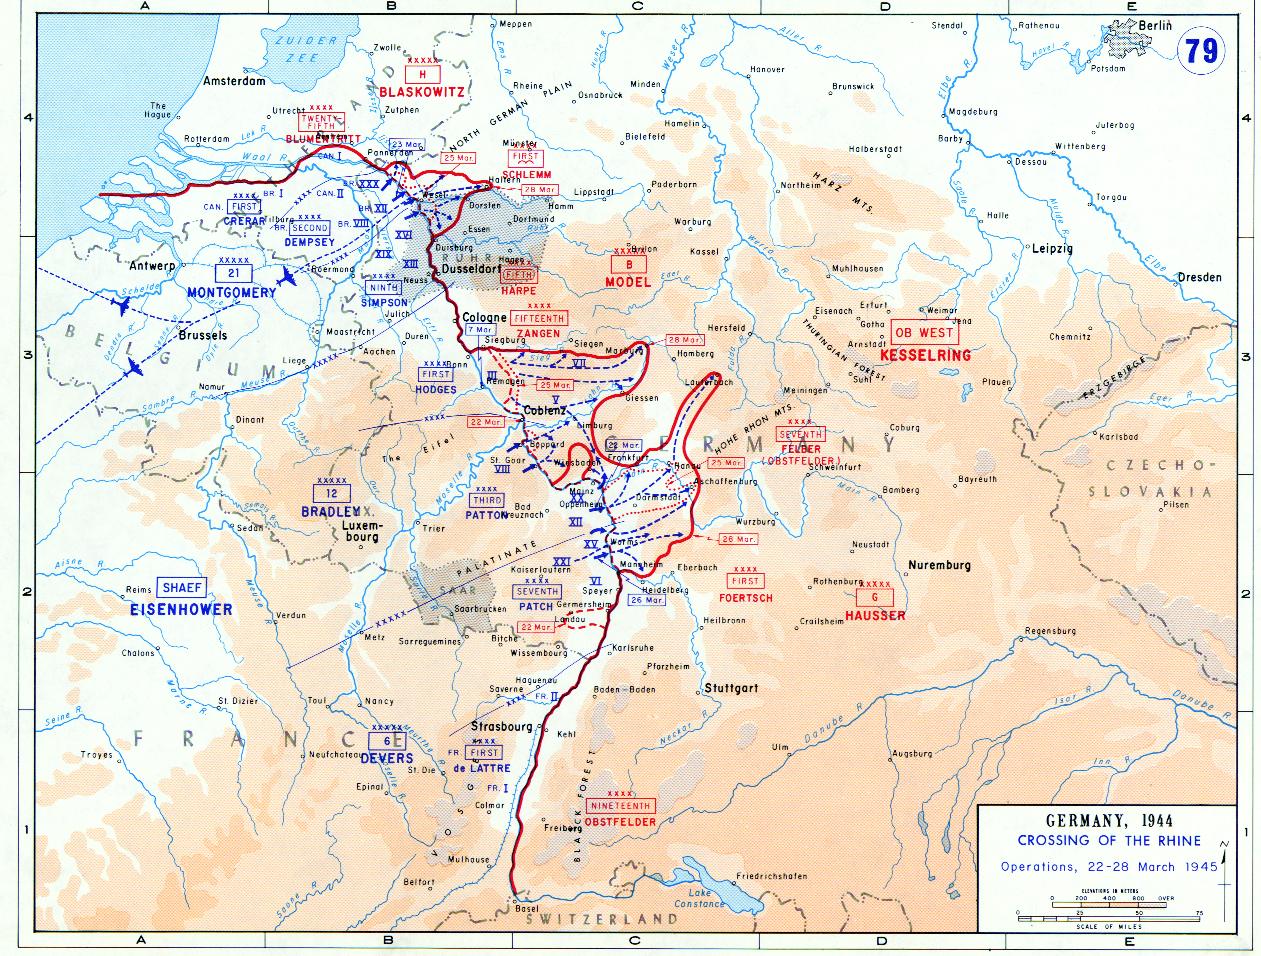 sources united states military academy. map of the allies cross the rhine river (march )